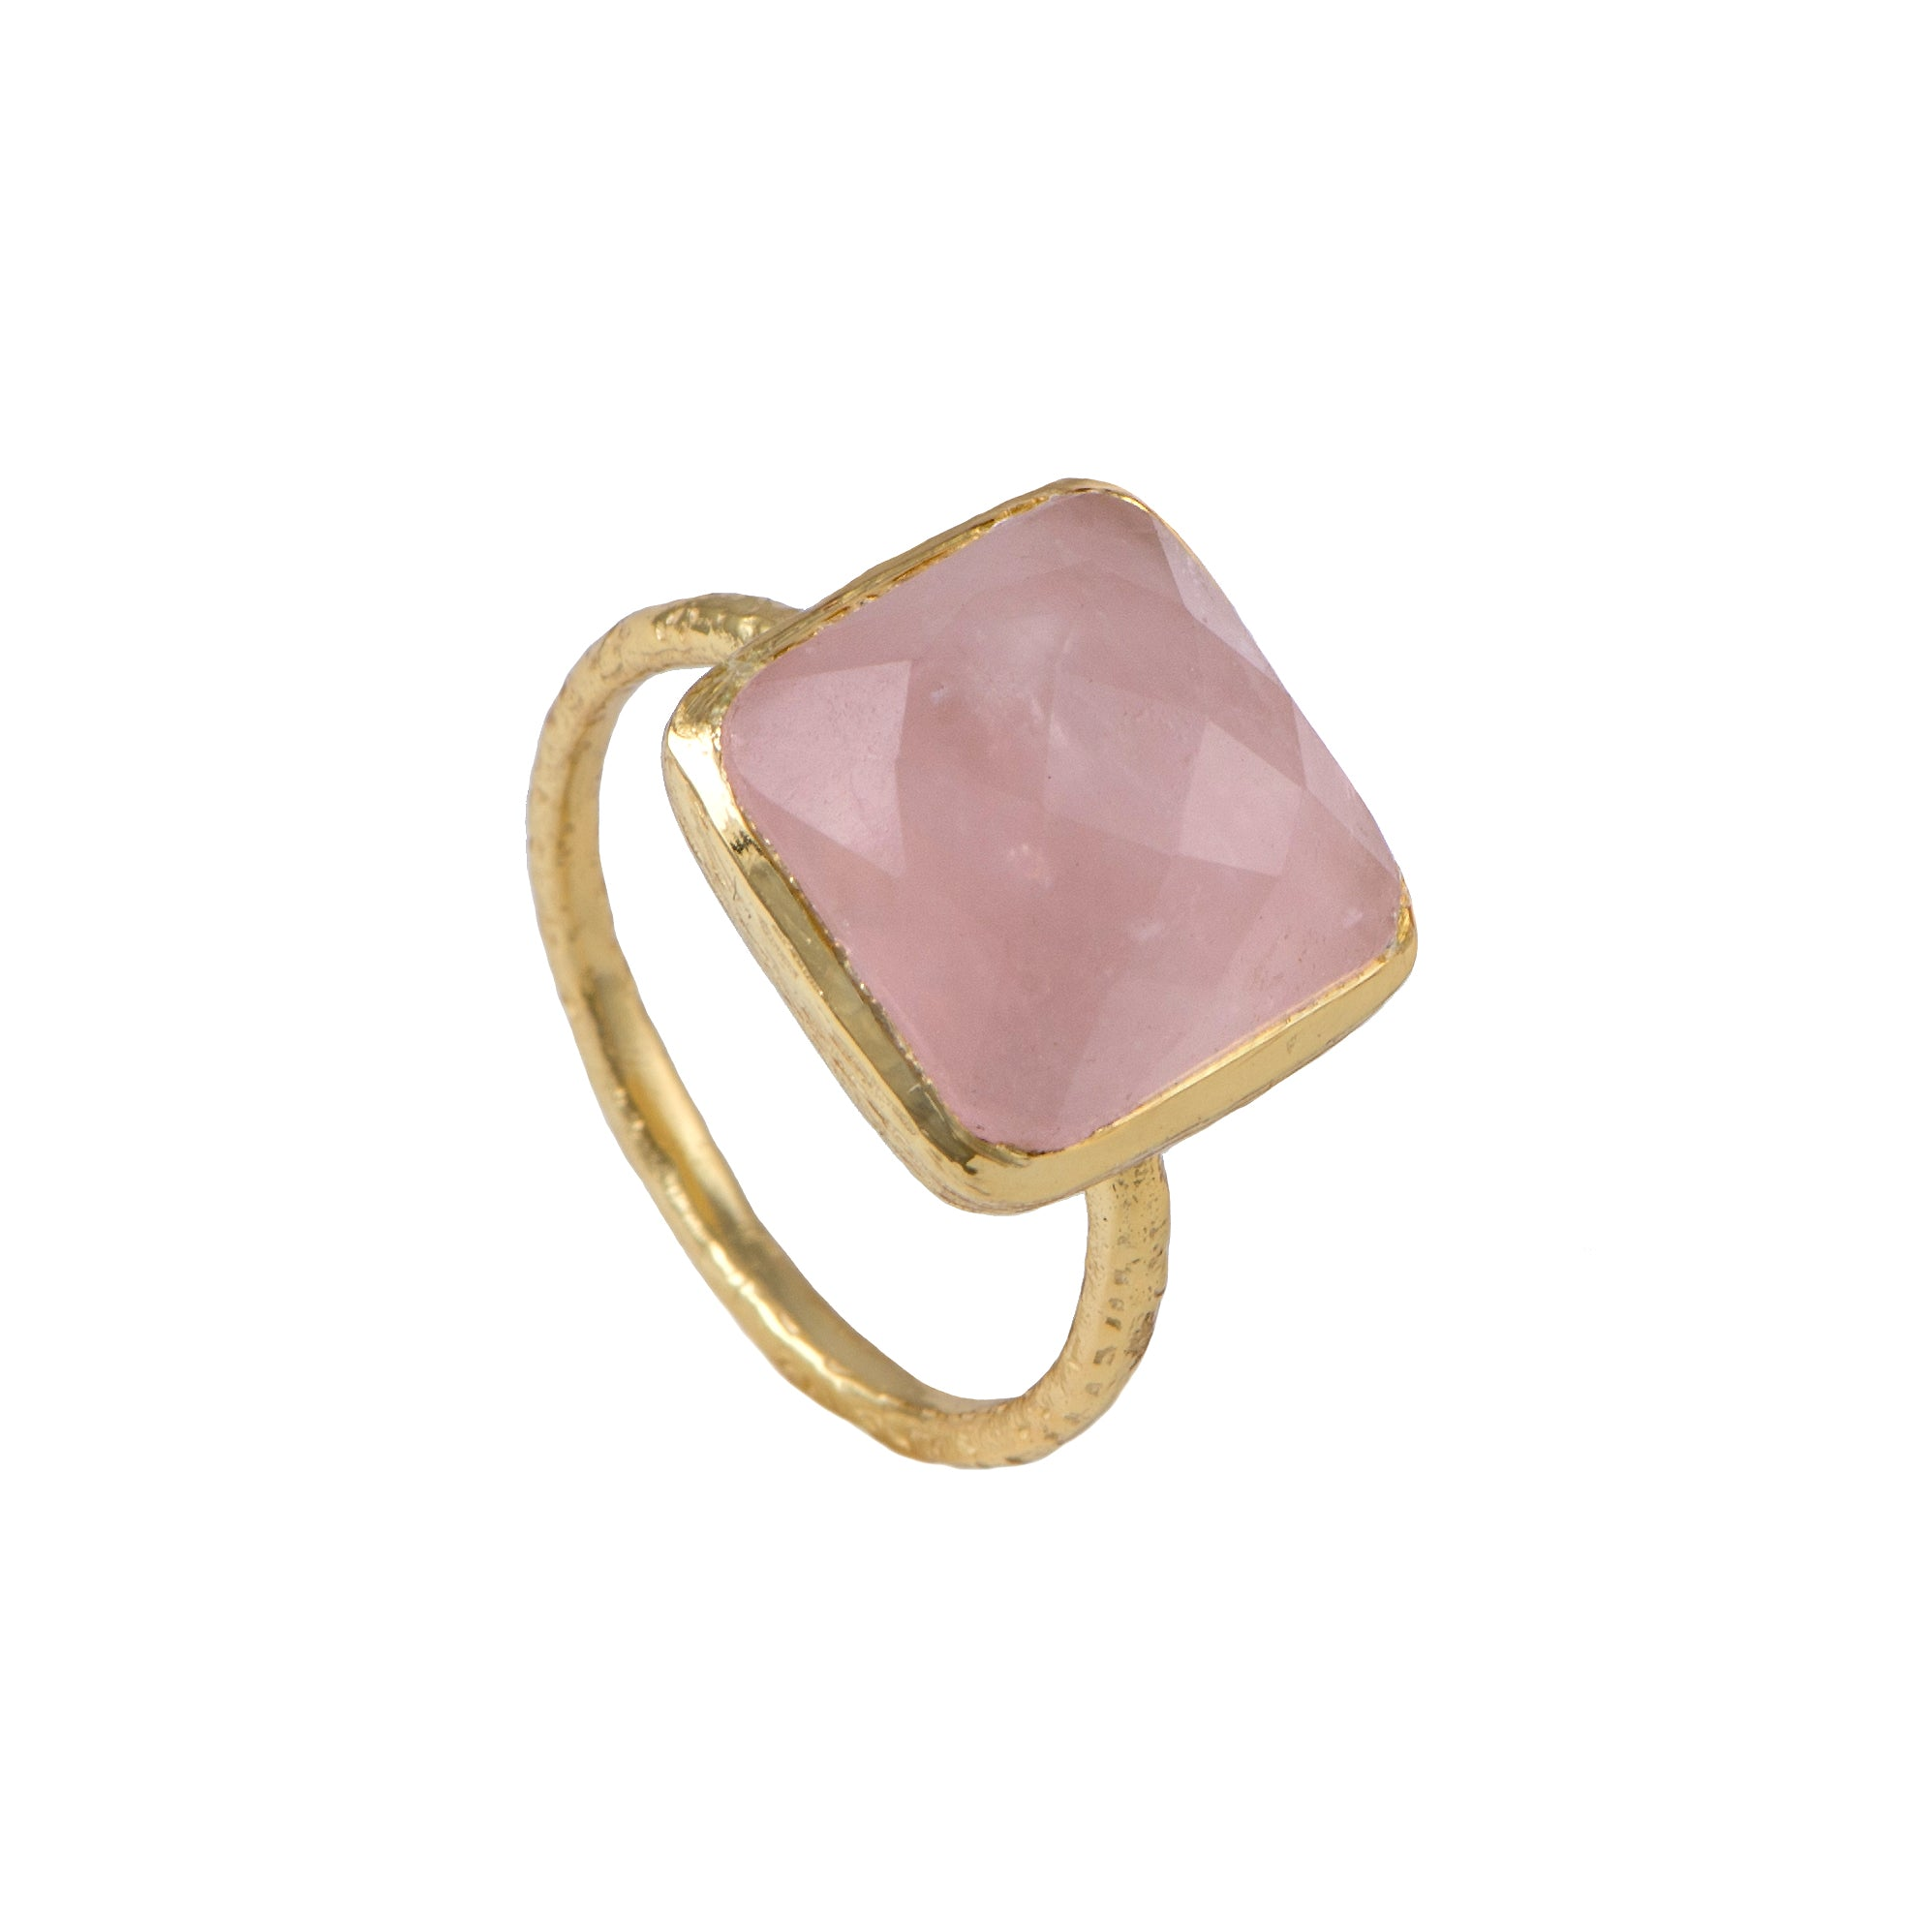 Gold Plated Silver Ring with Square Semiprecious Stone - Rose Quartz